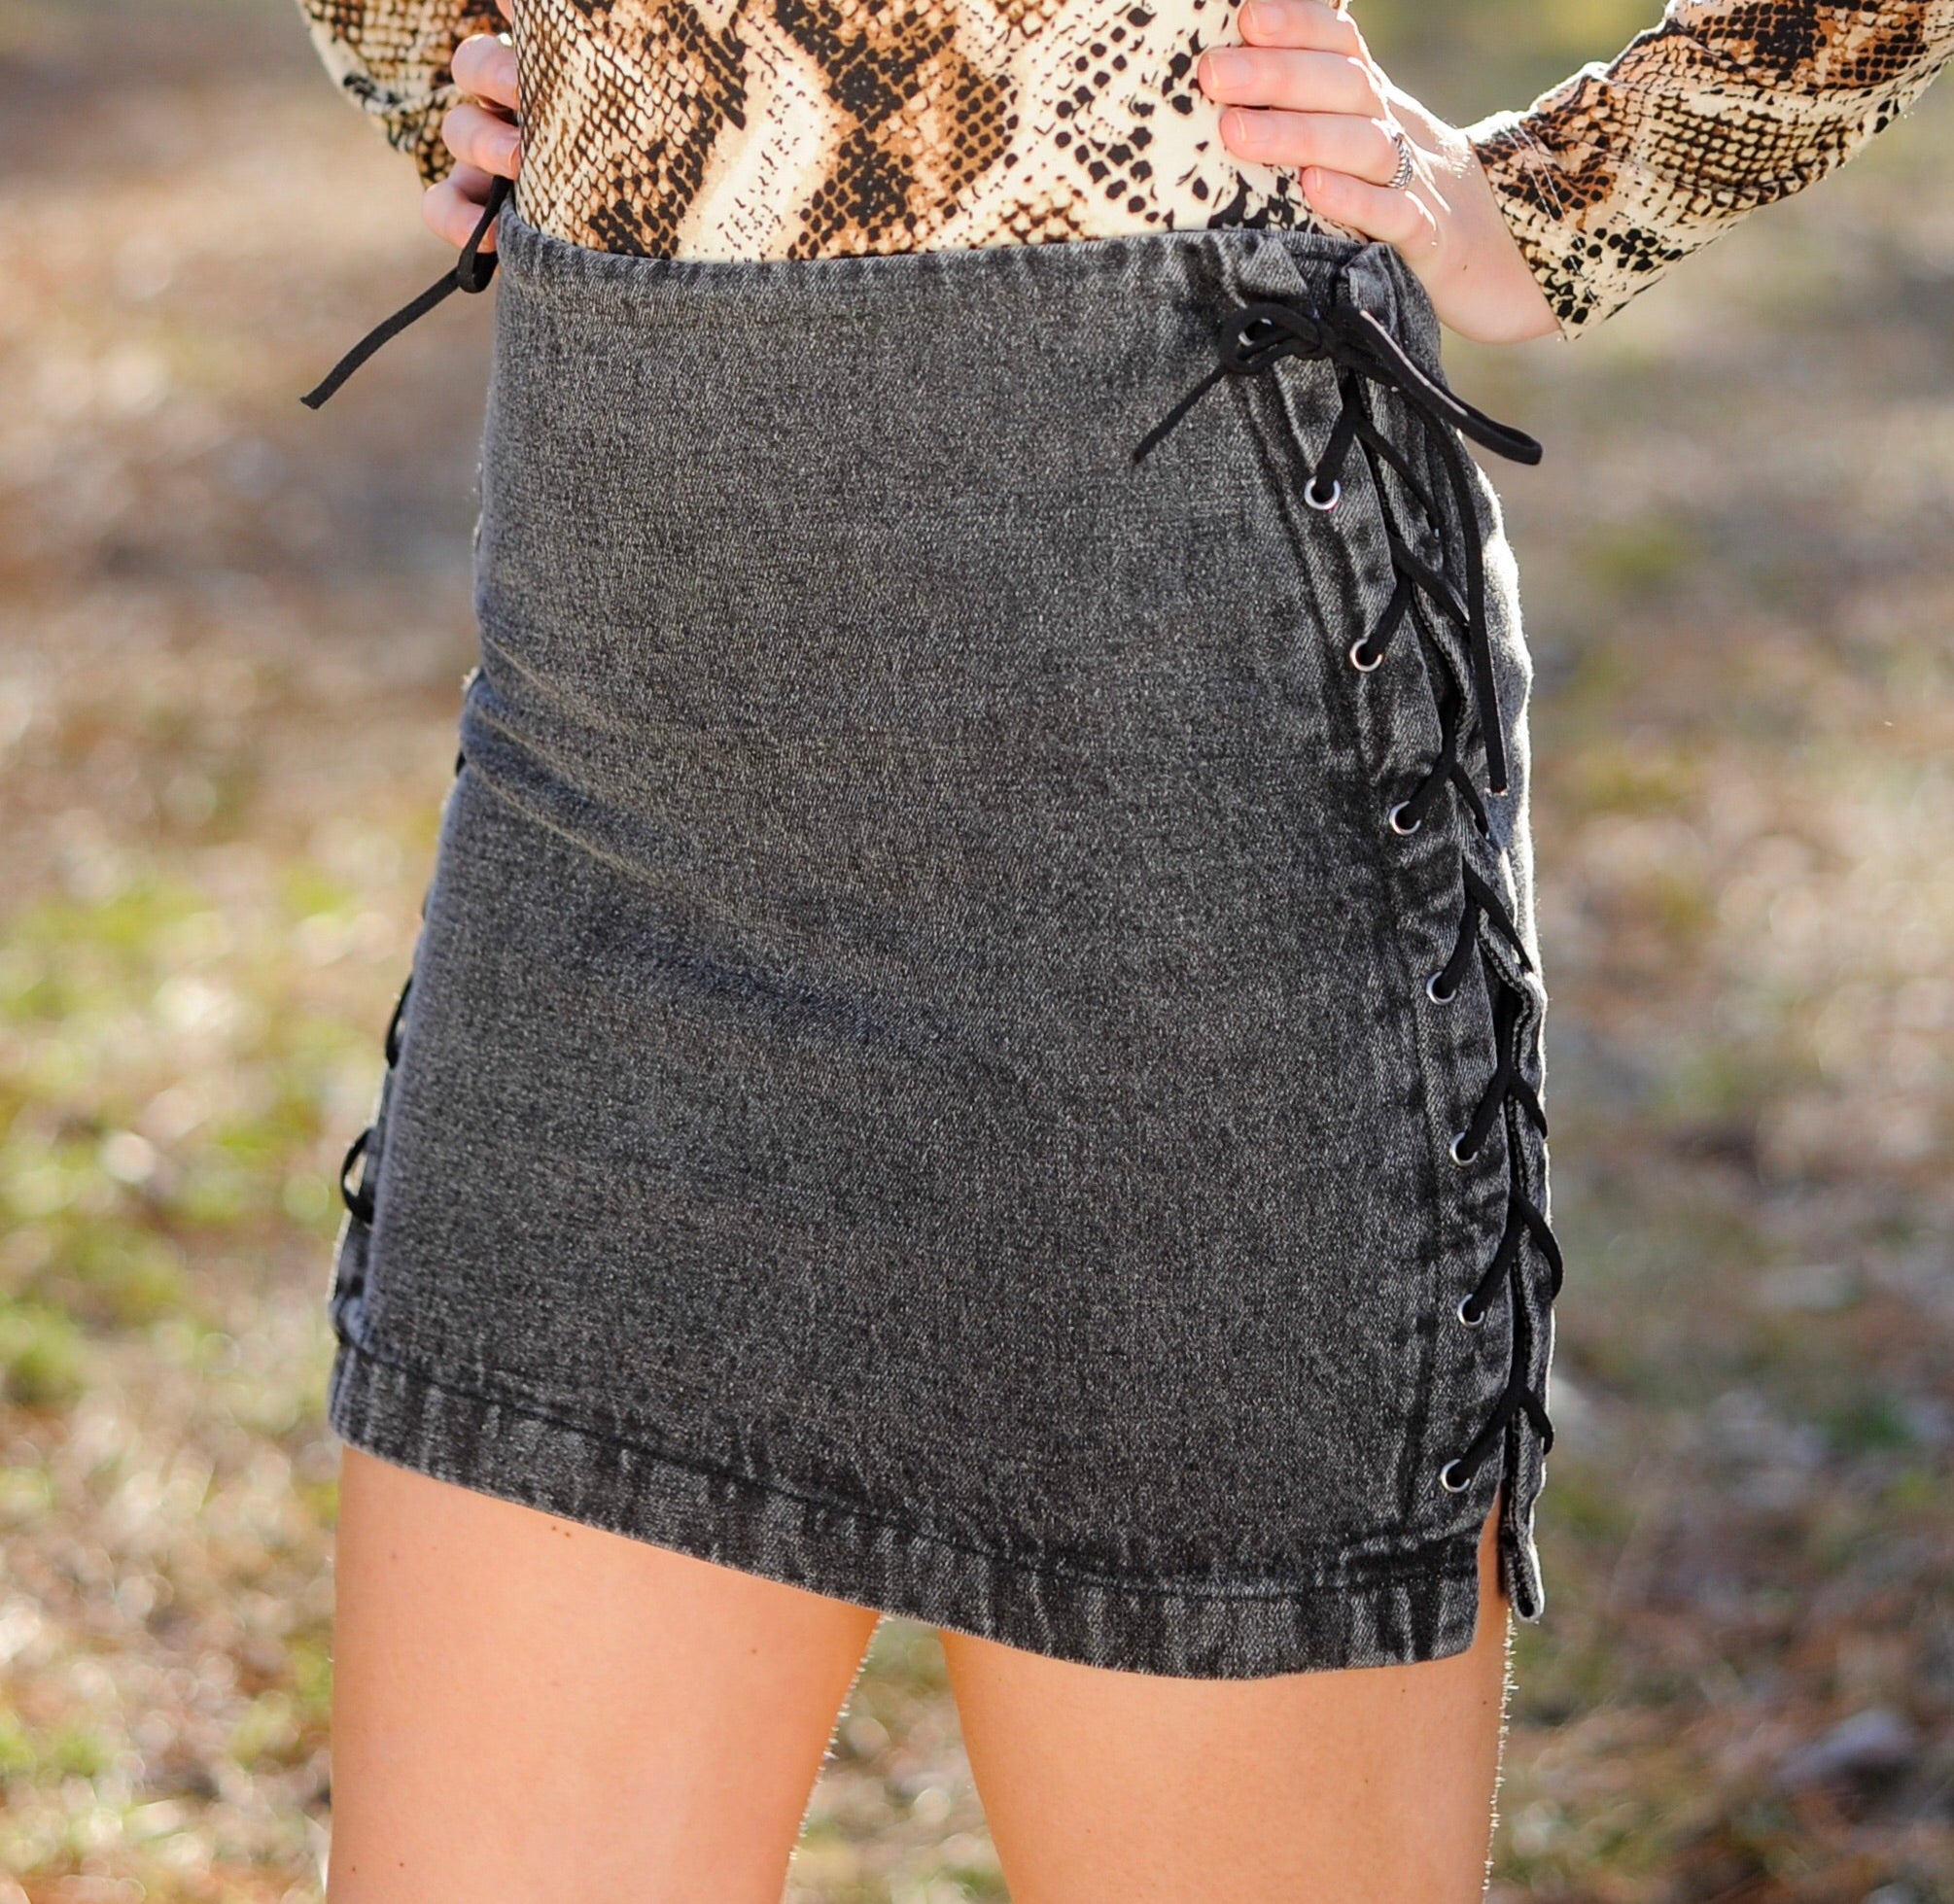 e6151f7bf1 Washed Black Side Lace Denim Skirt – Leap of Faith